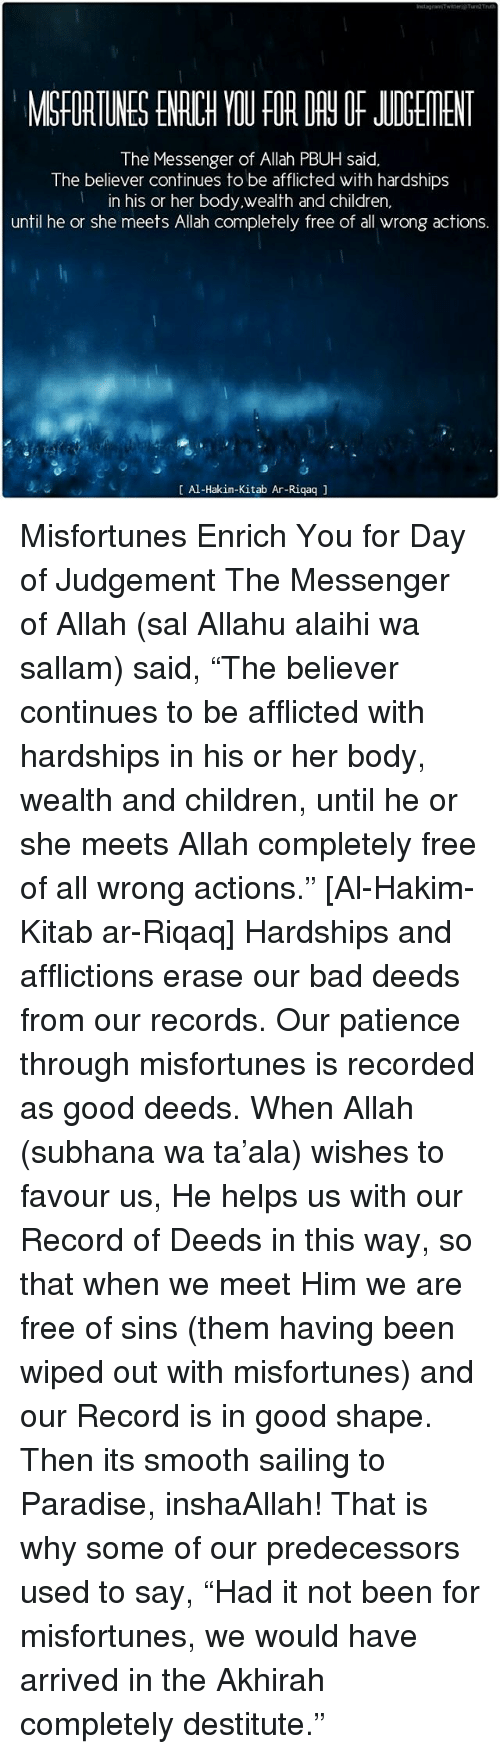 """Misfortunately: The Messenger of Allah PBUH said,  The believer continues to be afflicted with hardships  in his or her body,wealth and Children,  until he or she meets Allah completely free of all wrong actions.  Al-Hakim-Kitab Ar-Riqaq Misfortunes Enrich You for Day of Judgement The Messenger of Allah (sal Allahu alaihi wa sallam) said, """"The believer continues to be afflicted with hardships in his or her body, wealth and children, until he or she meets Allah completely free of all wrong actions."""" [Al-Hakim- Kitab ar-Riqaq] Hardships and afflictions erase our bad deeds from our records. Our patience through misfortunes is recorded as good deeds. When Allah (subhana wa ta'ala) wishes to favour us, He helps us with our Record of Deeds in this way, so that when we meet Him we are free of sins (them having been wiped out with misfortunes) and our Record is in good shape. Then its smooth sailing to Paradise, inshaAllah! That is why some of our predecessors used to say, """"Had it not been for misfortunes, we would have arrived in the Akhirah completely destitute."""""""